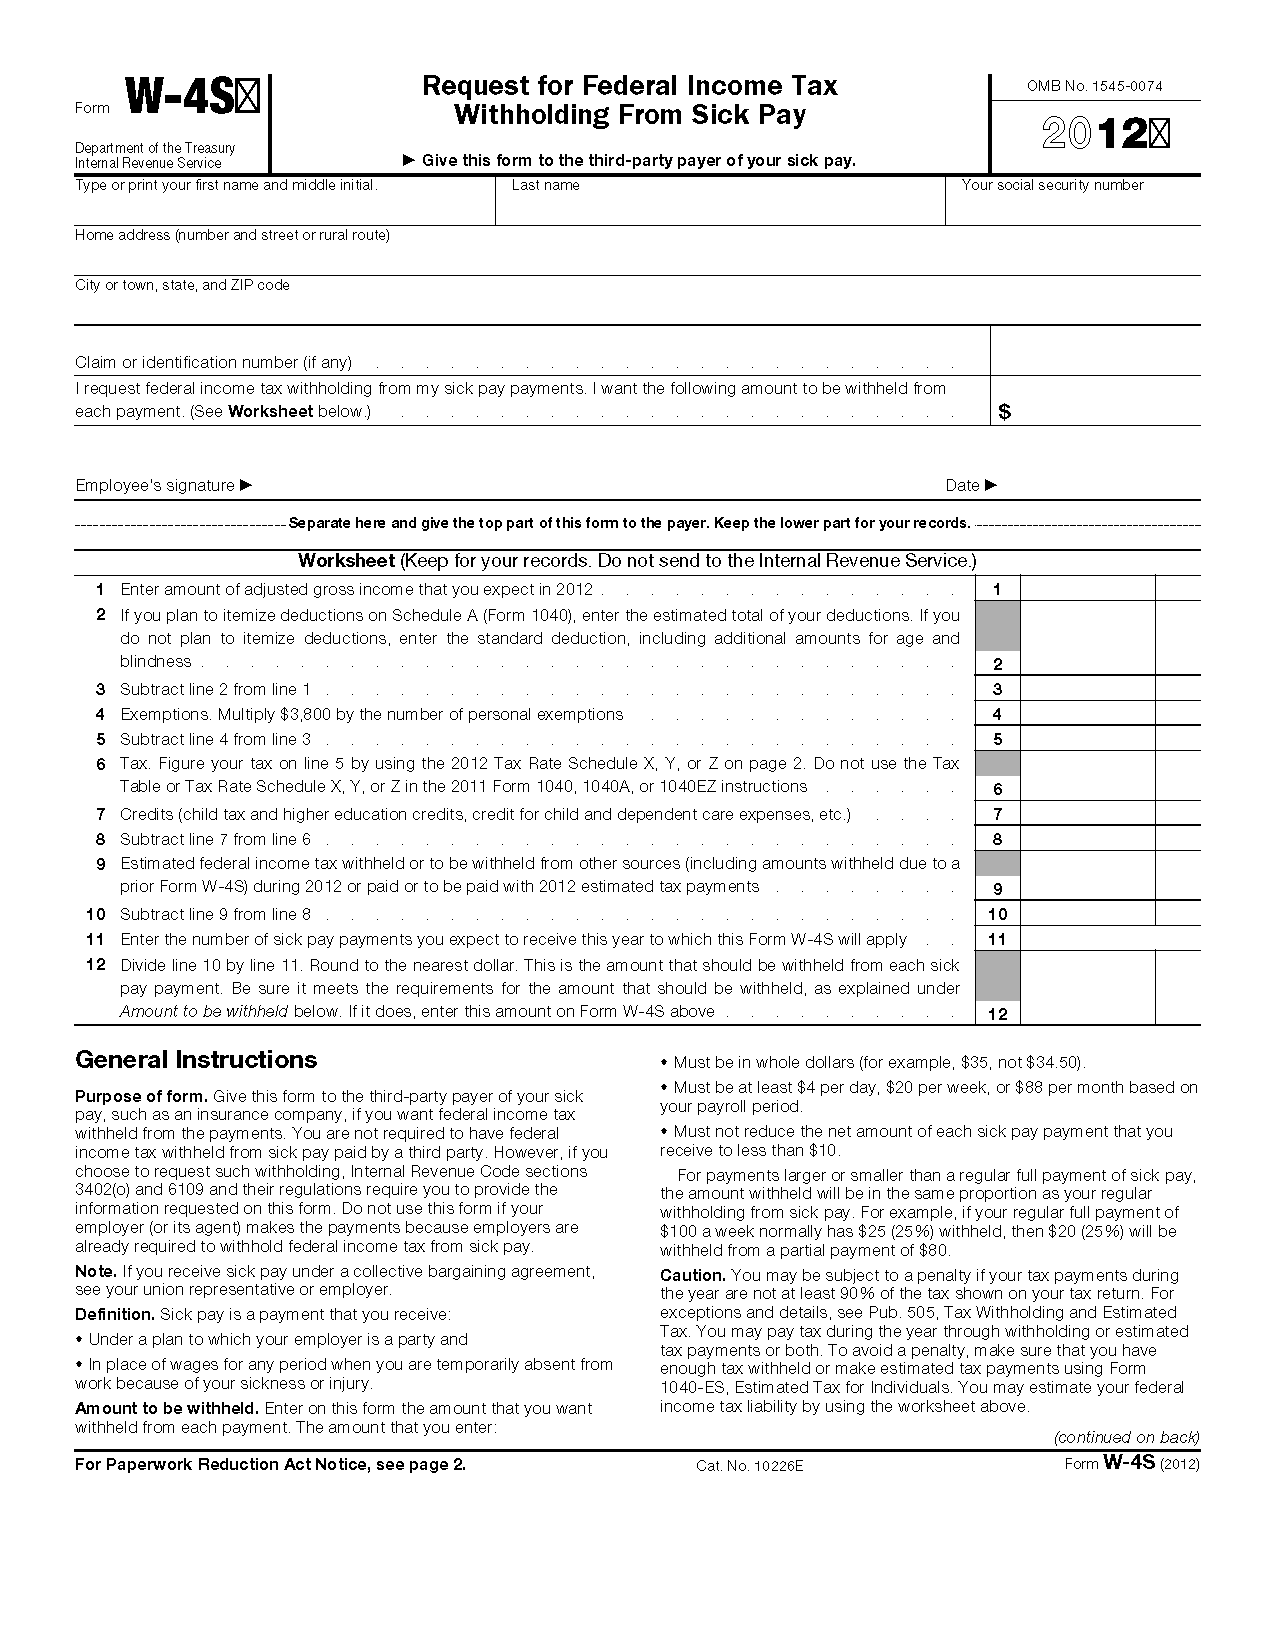 Form W 4s Request For Federal Income Tax Withholding From